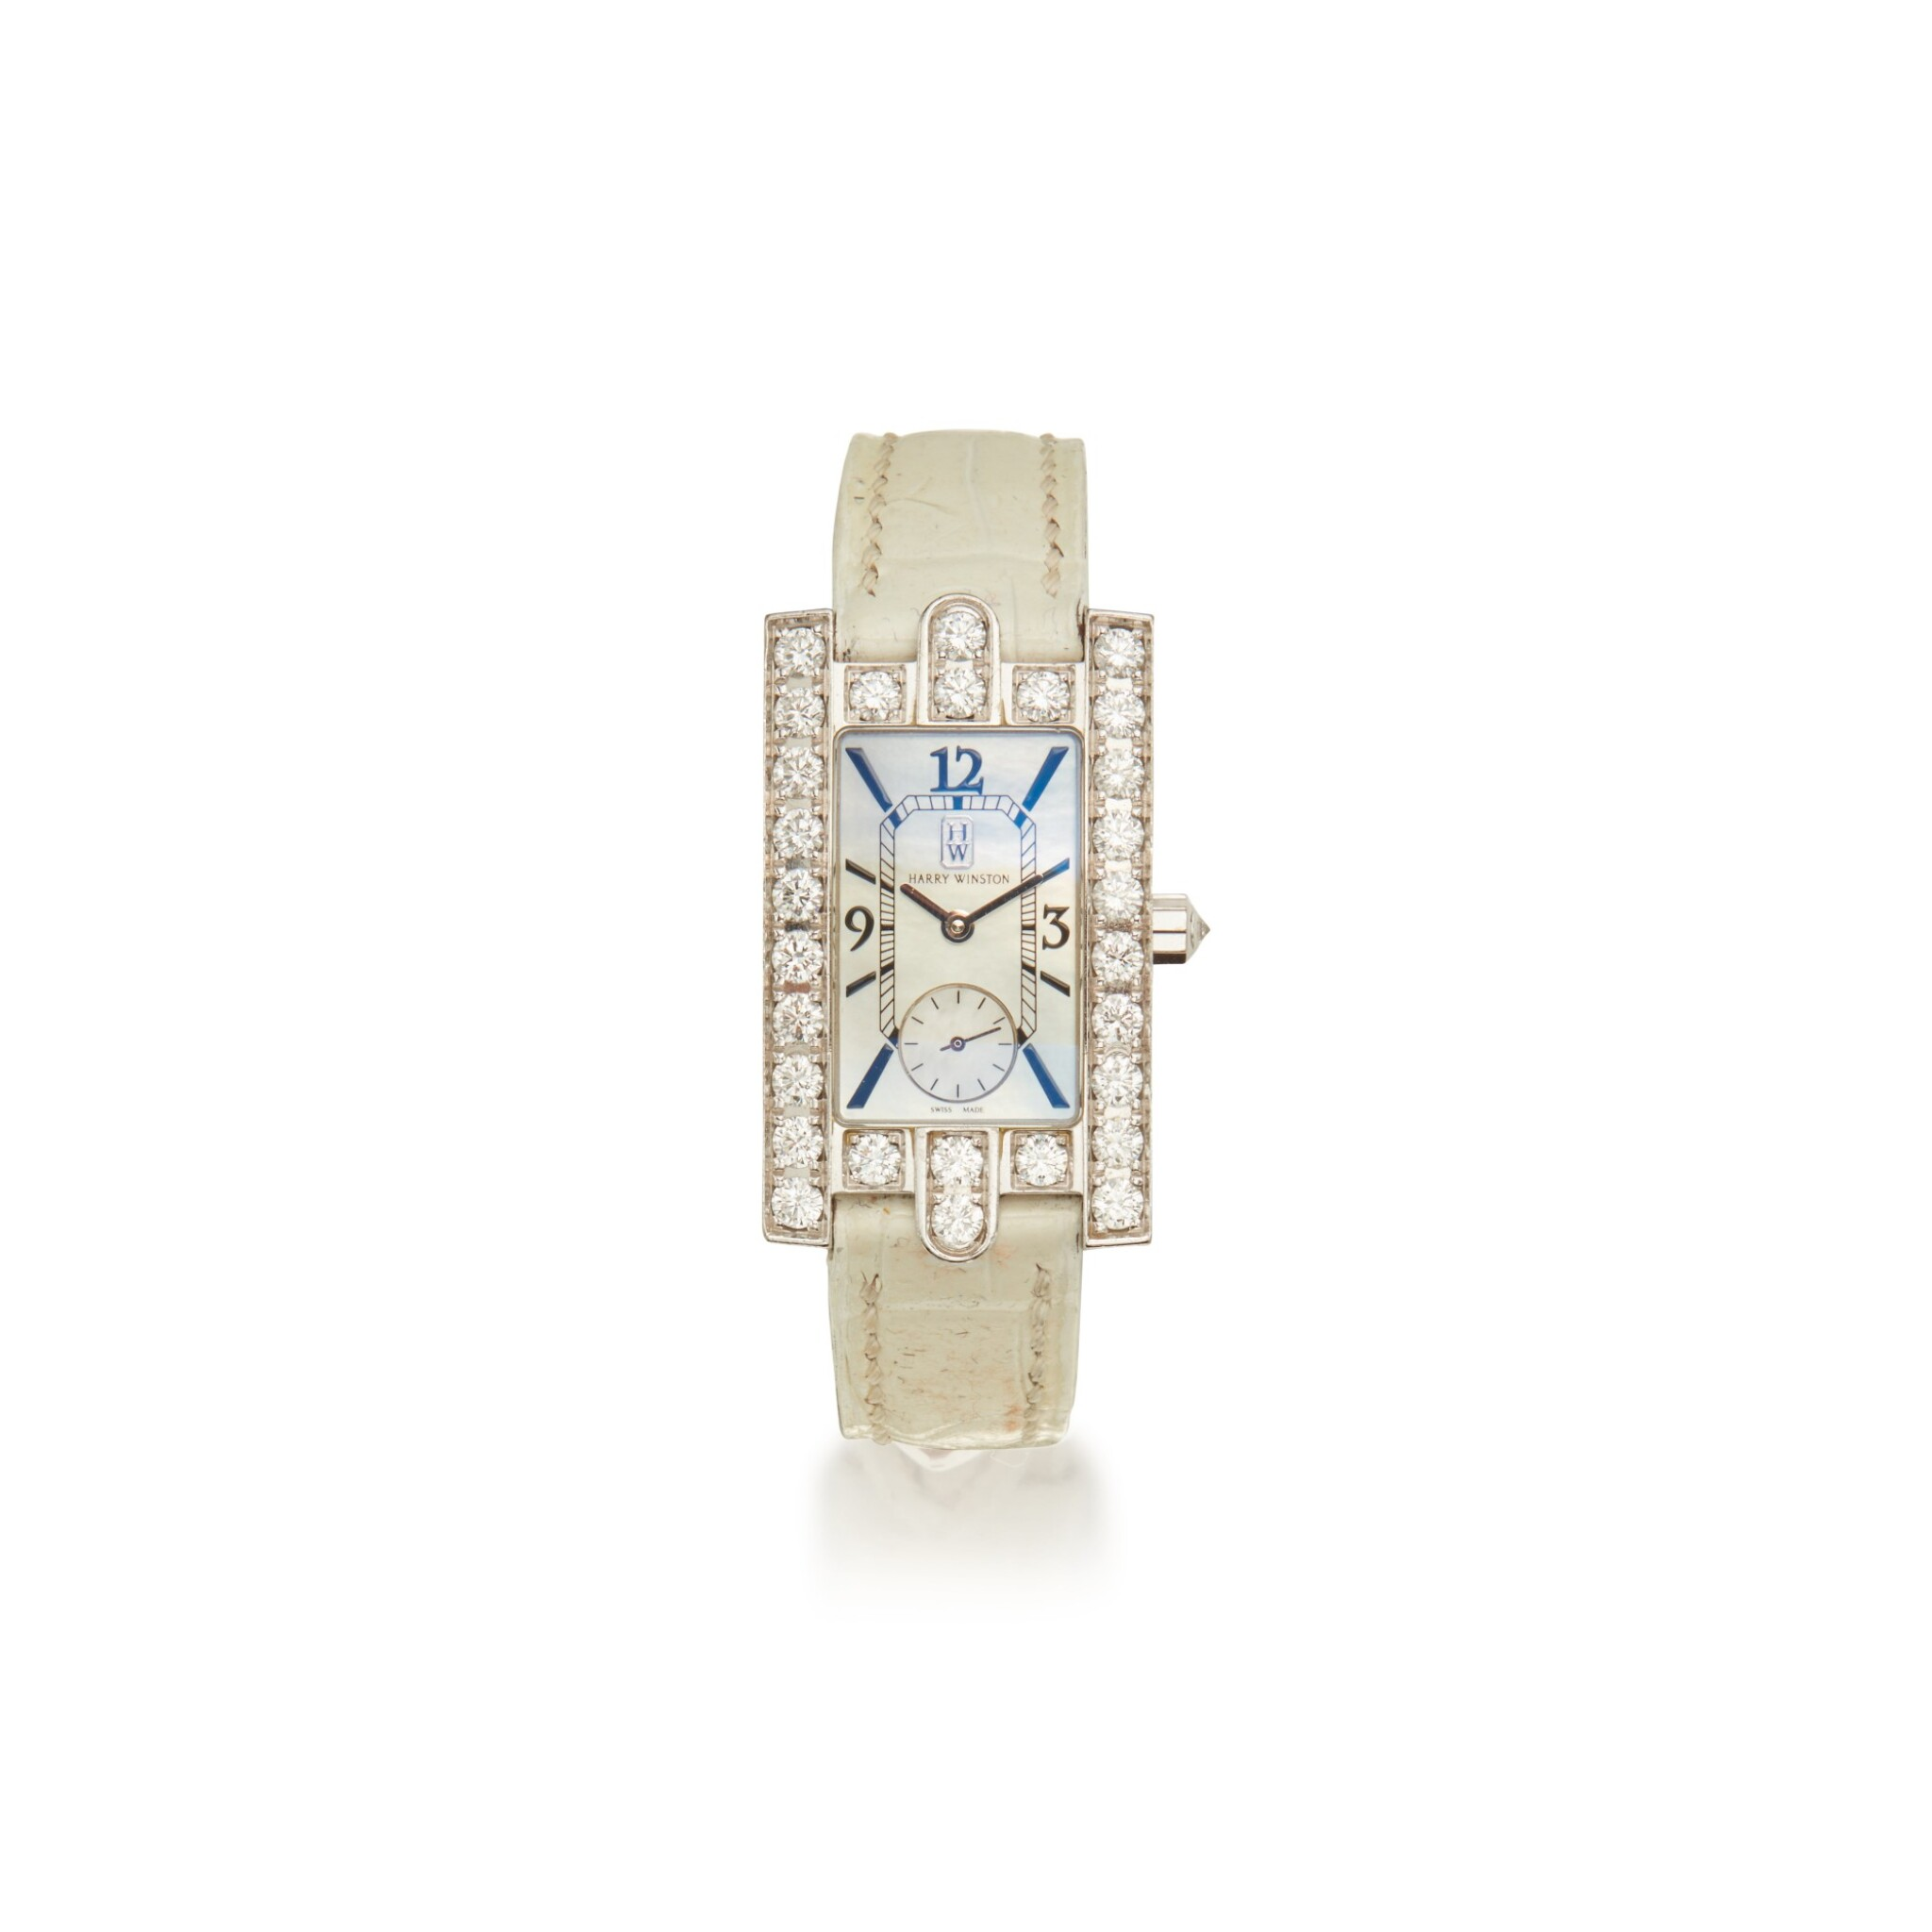 View full screen - View 1 of Lot 336. Harry Winston | Mother-of-Pearl and Diamond 'Avenue' Wristwatch.